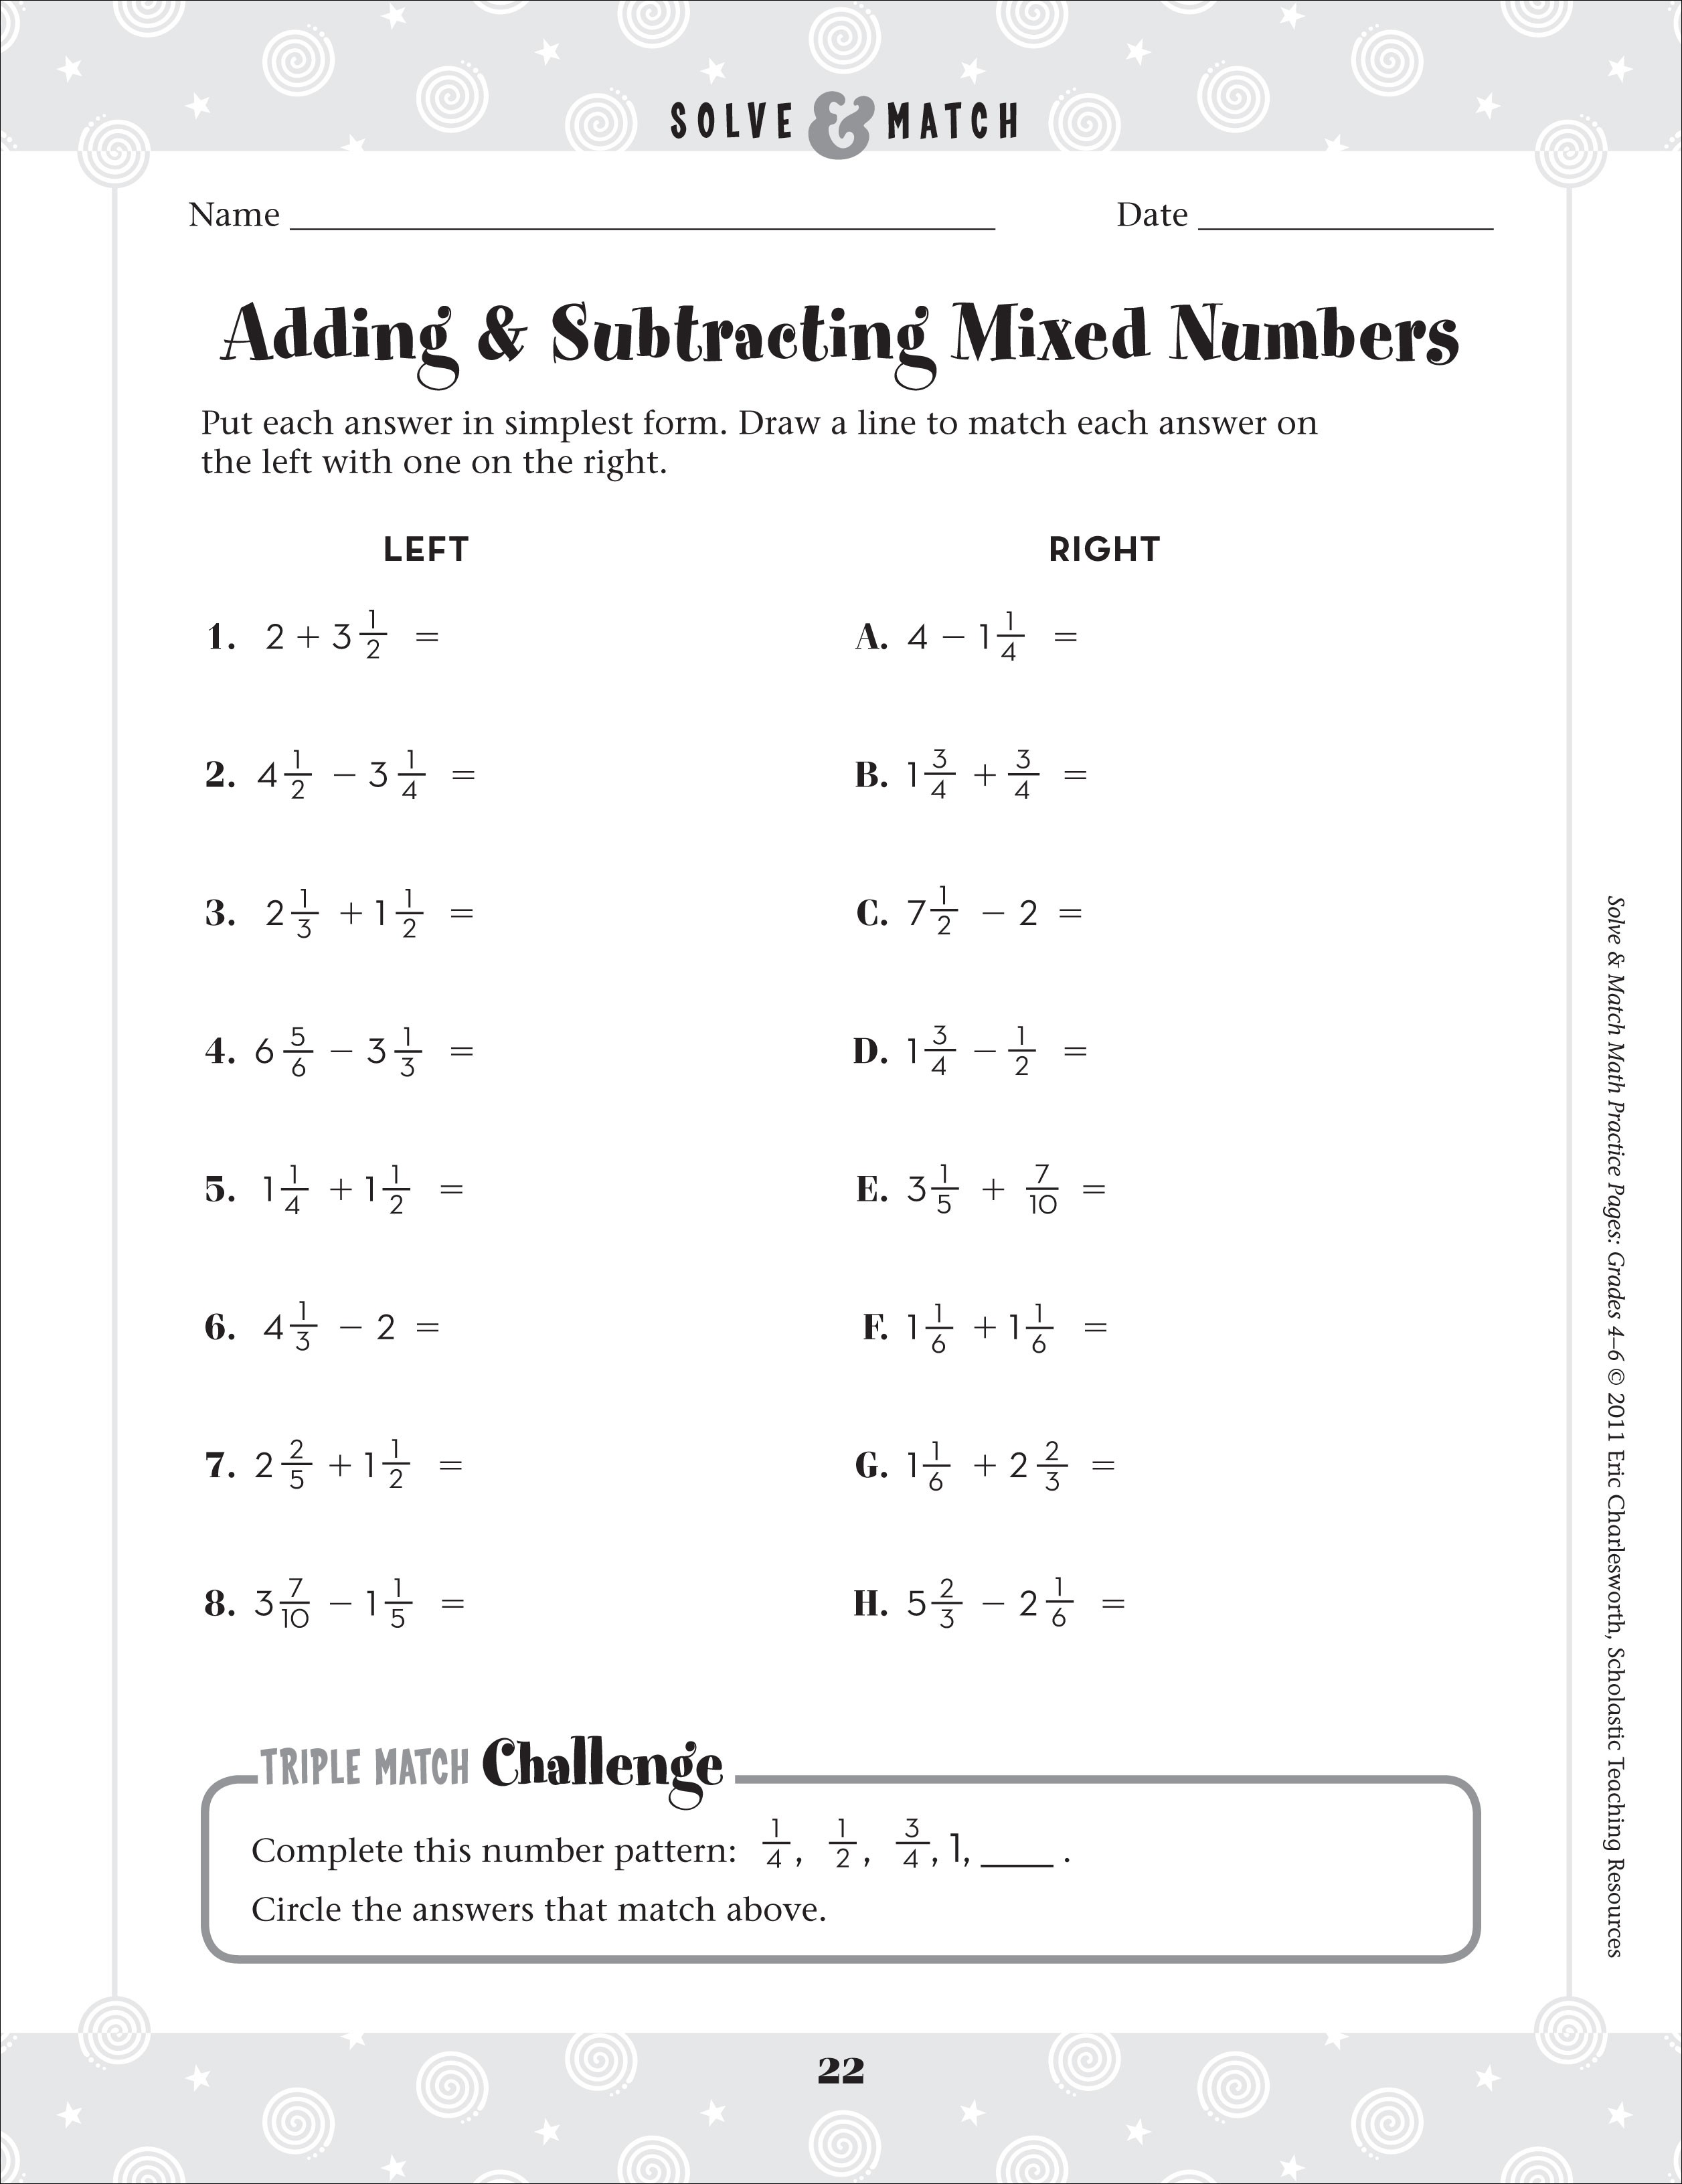 97 Free Download Worksheets For Subtracting Mixed Numbers